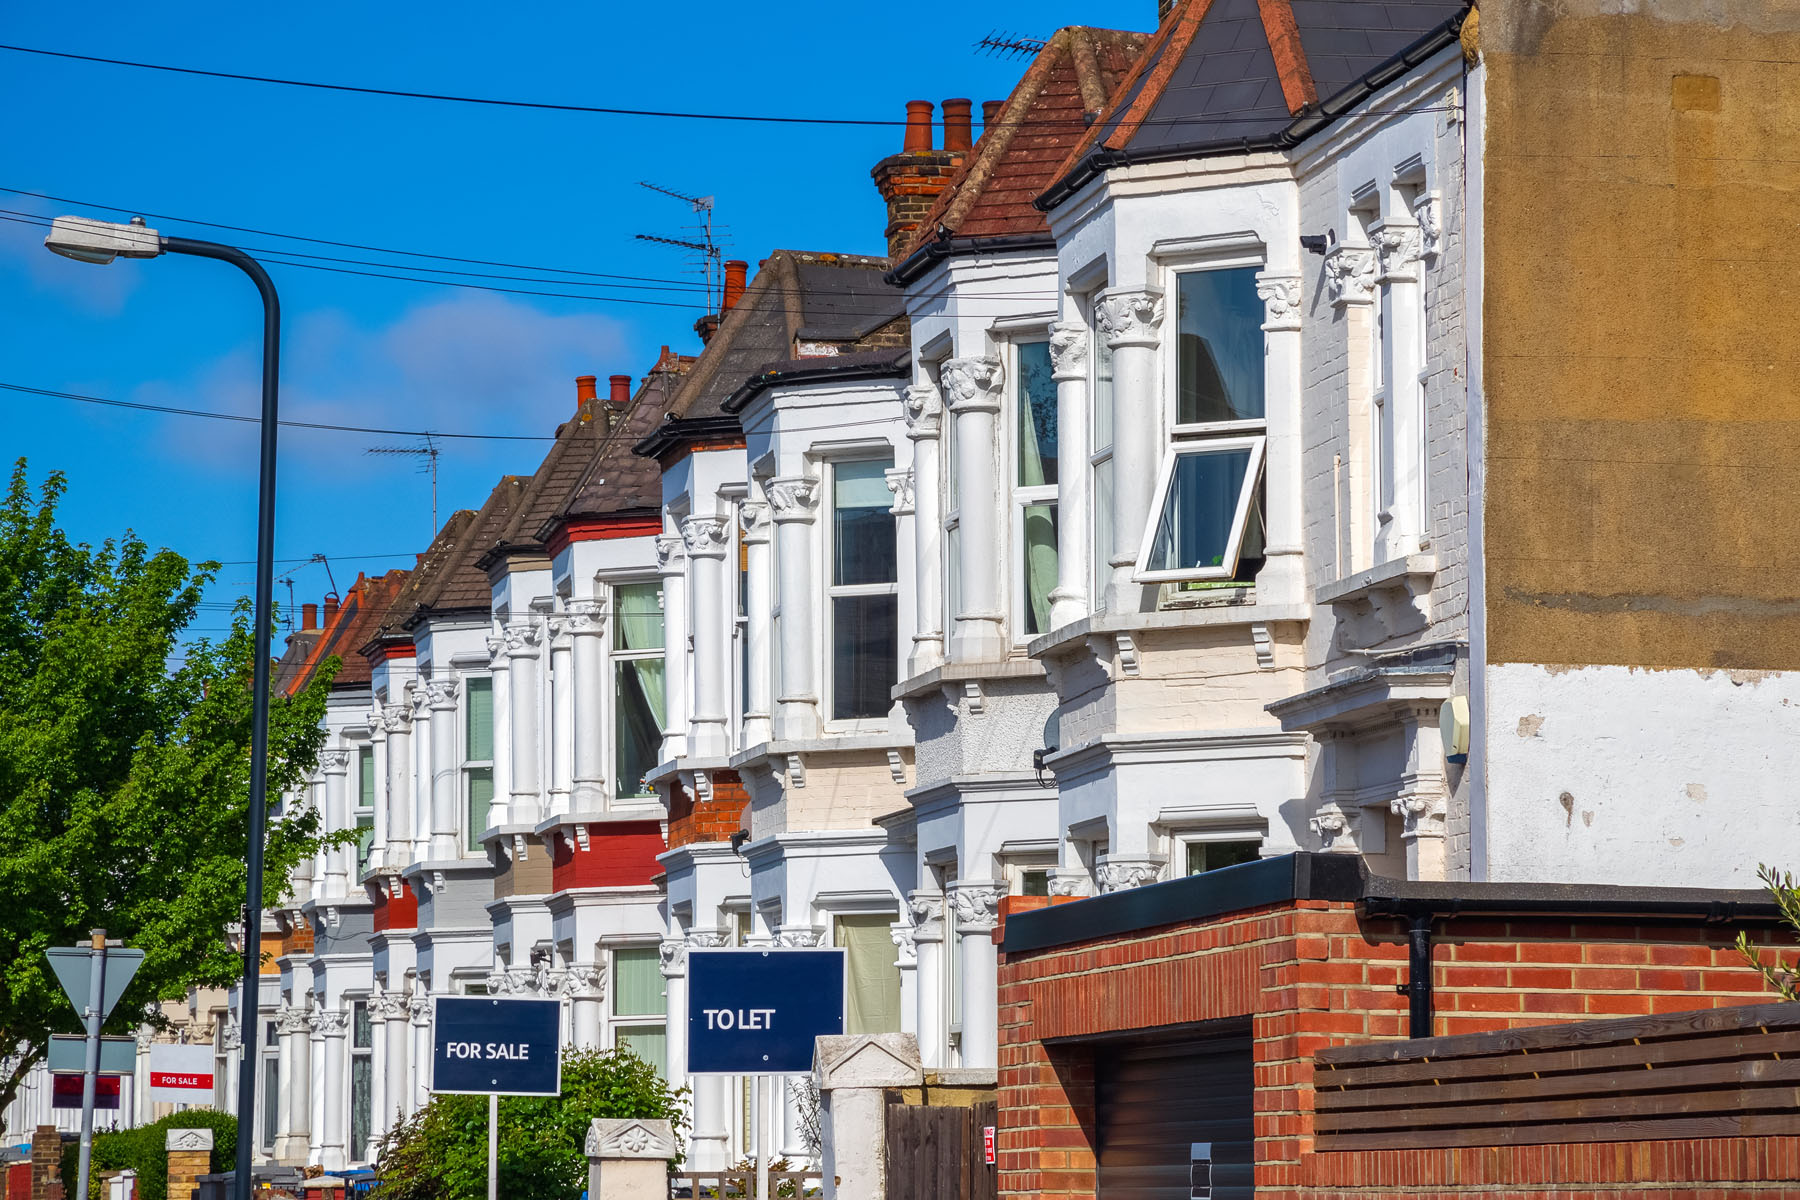 UK House Prices See Highest Growth In Six Years In 2020. The average UK house price has gone up by 7.5% this year, according to the Nationwide Building Society